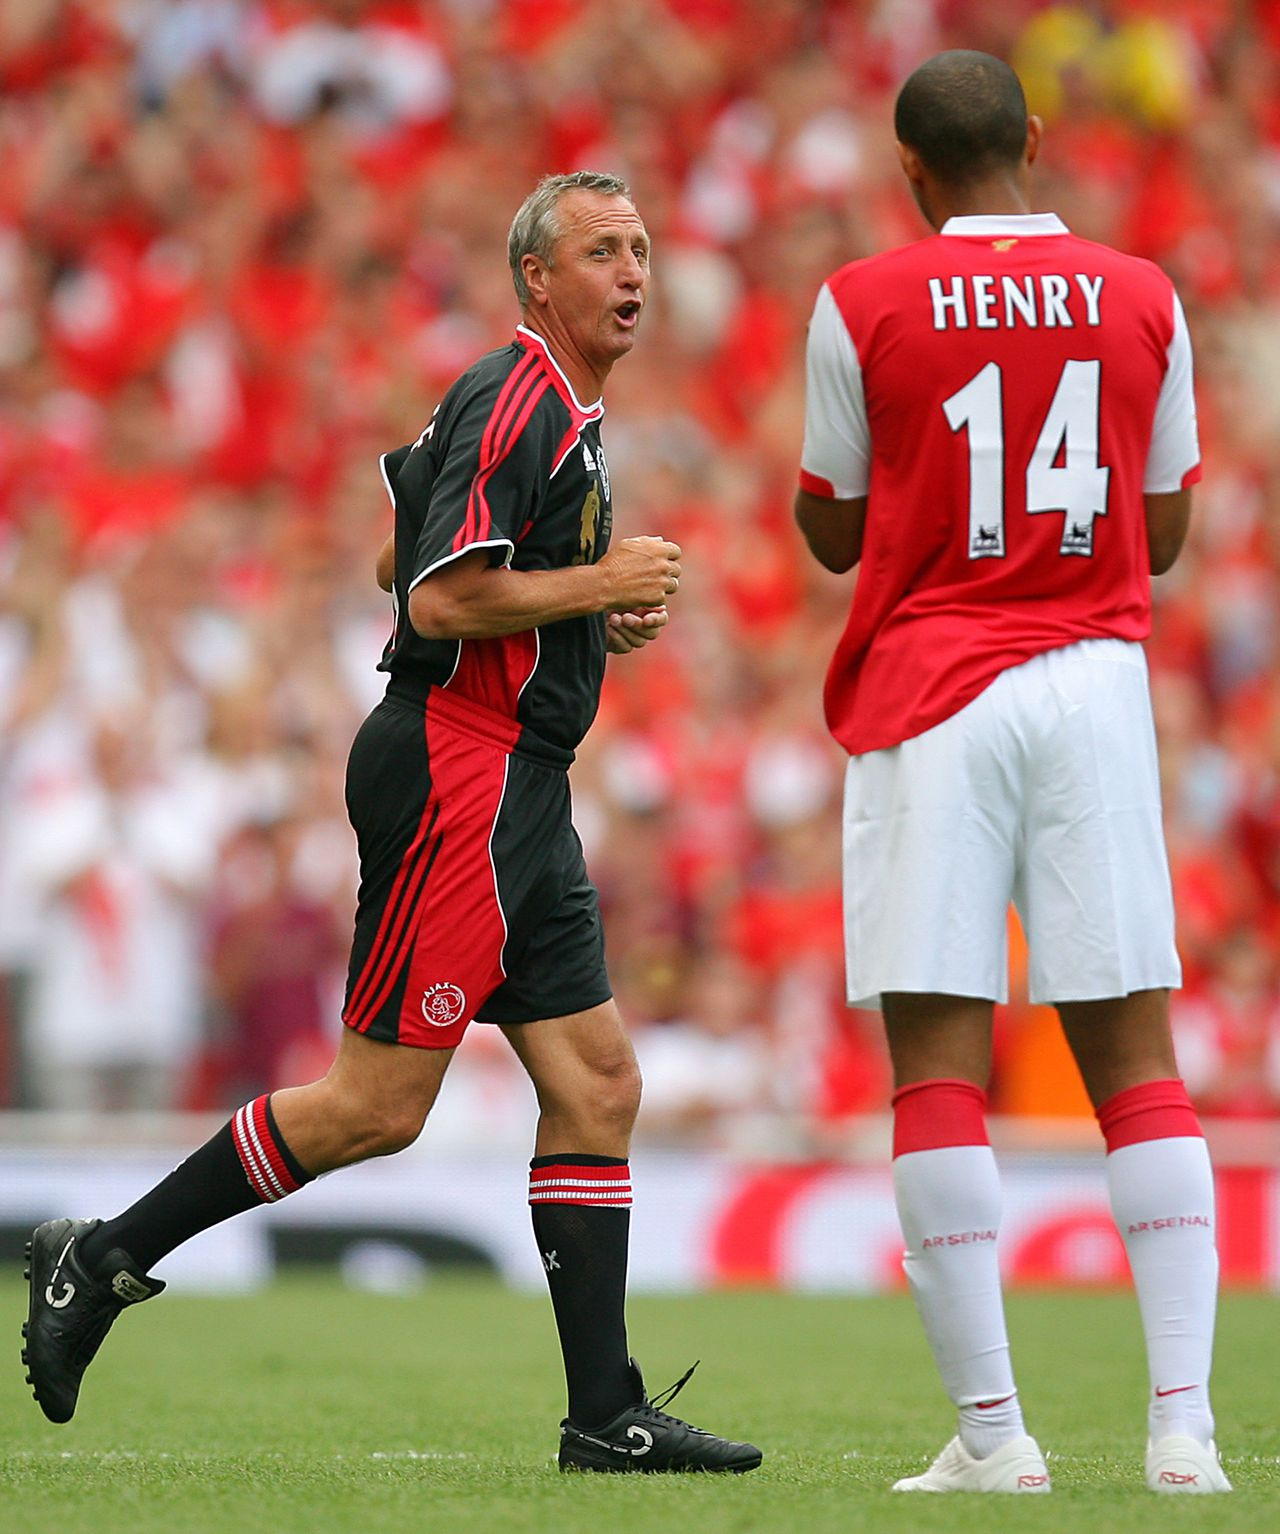 """Johan Cruijff (links) en Thierry Henry. Foto AFP Dutch soccer legend and Ajax player Johan Cruyff (L) reacts to appluse by Arsenal's Thierry Henry during a pre season """"Dennis Bergkamp"""" testimonial match at Emirates stadium in north London, 22 July 2006.The match played in honour of Arsenal's Dutch player Dennis Bergkamp who has served the club for 11 years and will retire after the game is the first match played at the club's new stadium.Arsenal defeated Ajax 2-1. AFP PHOTO / ODD ANDERSEN"""